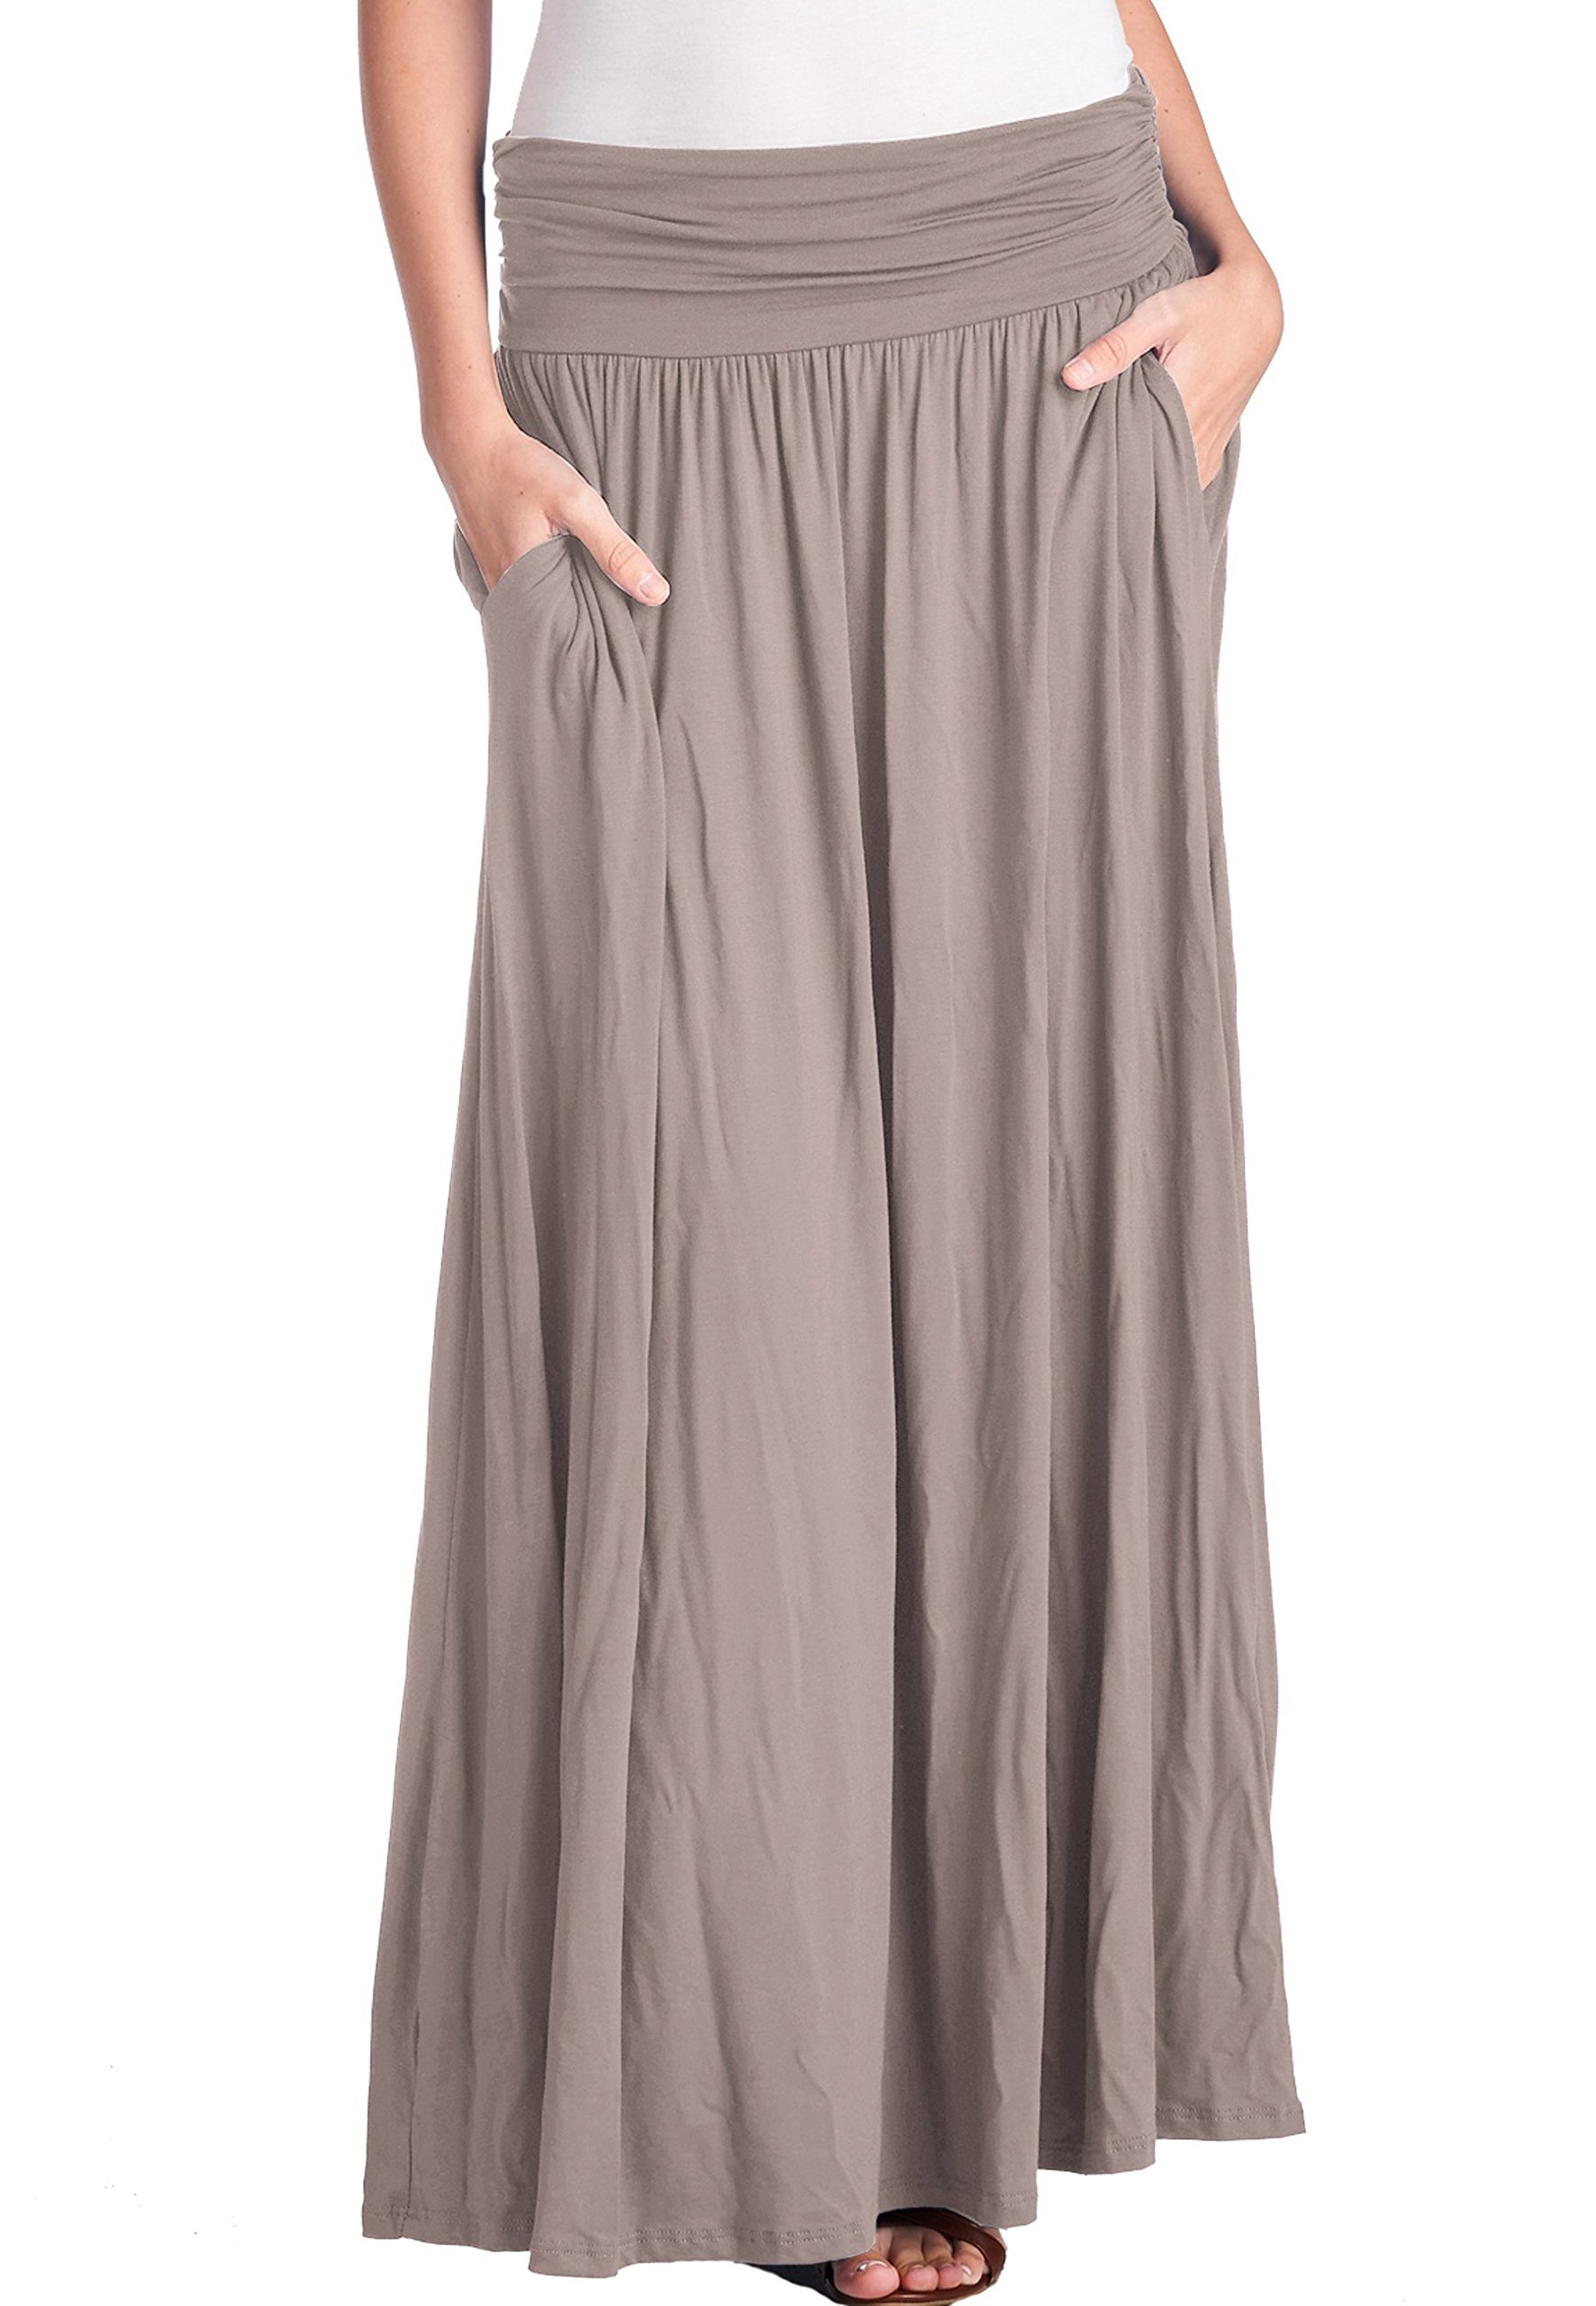 TRENDY UNITED Women's High Waist Fold Over Shirring Maxi Skirt with Pockets ,Toffee-maxi,X-Large